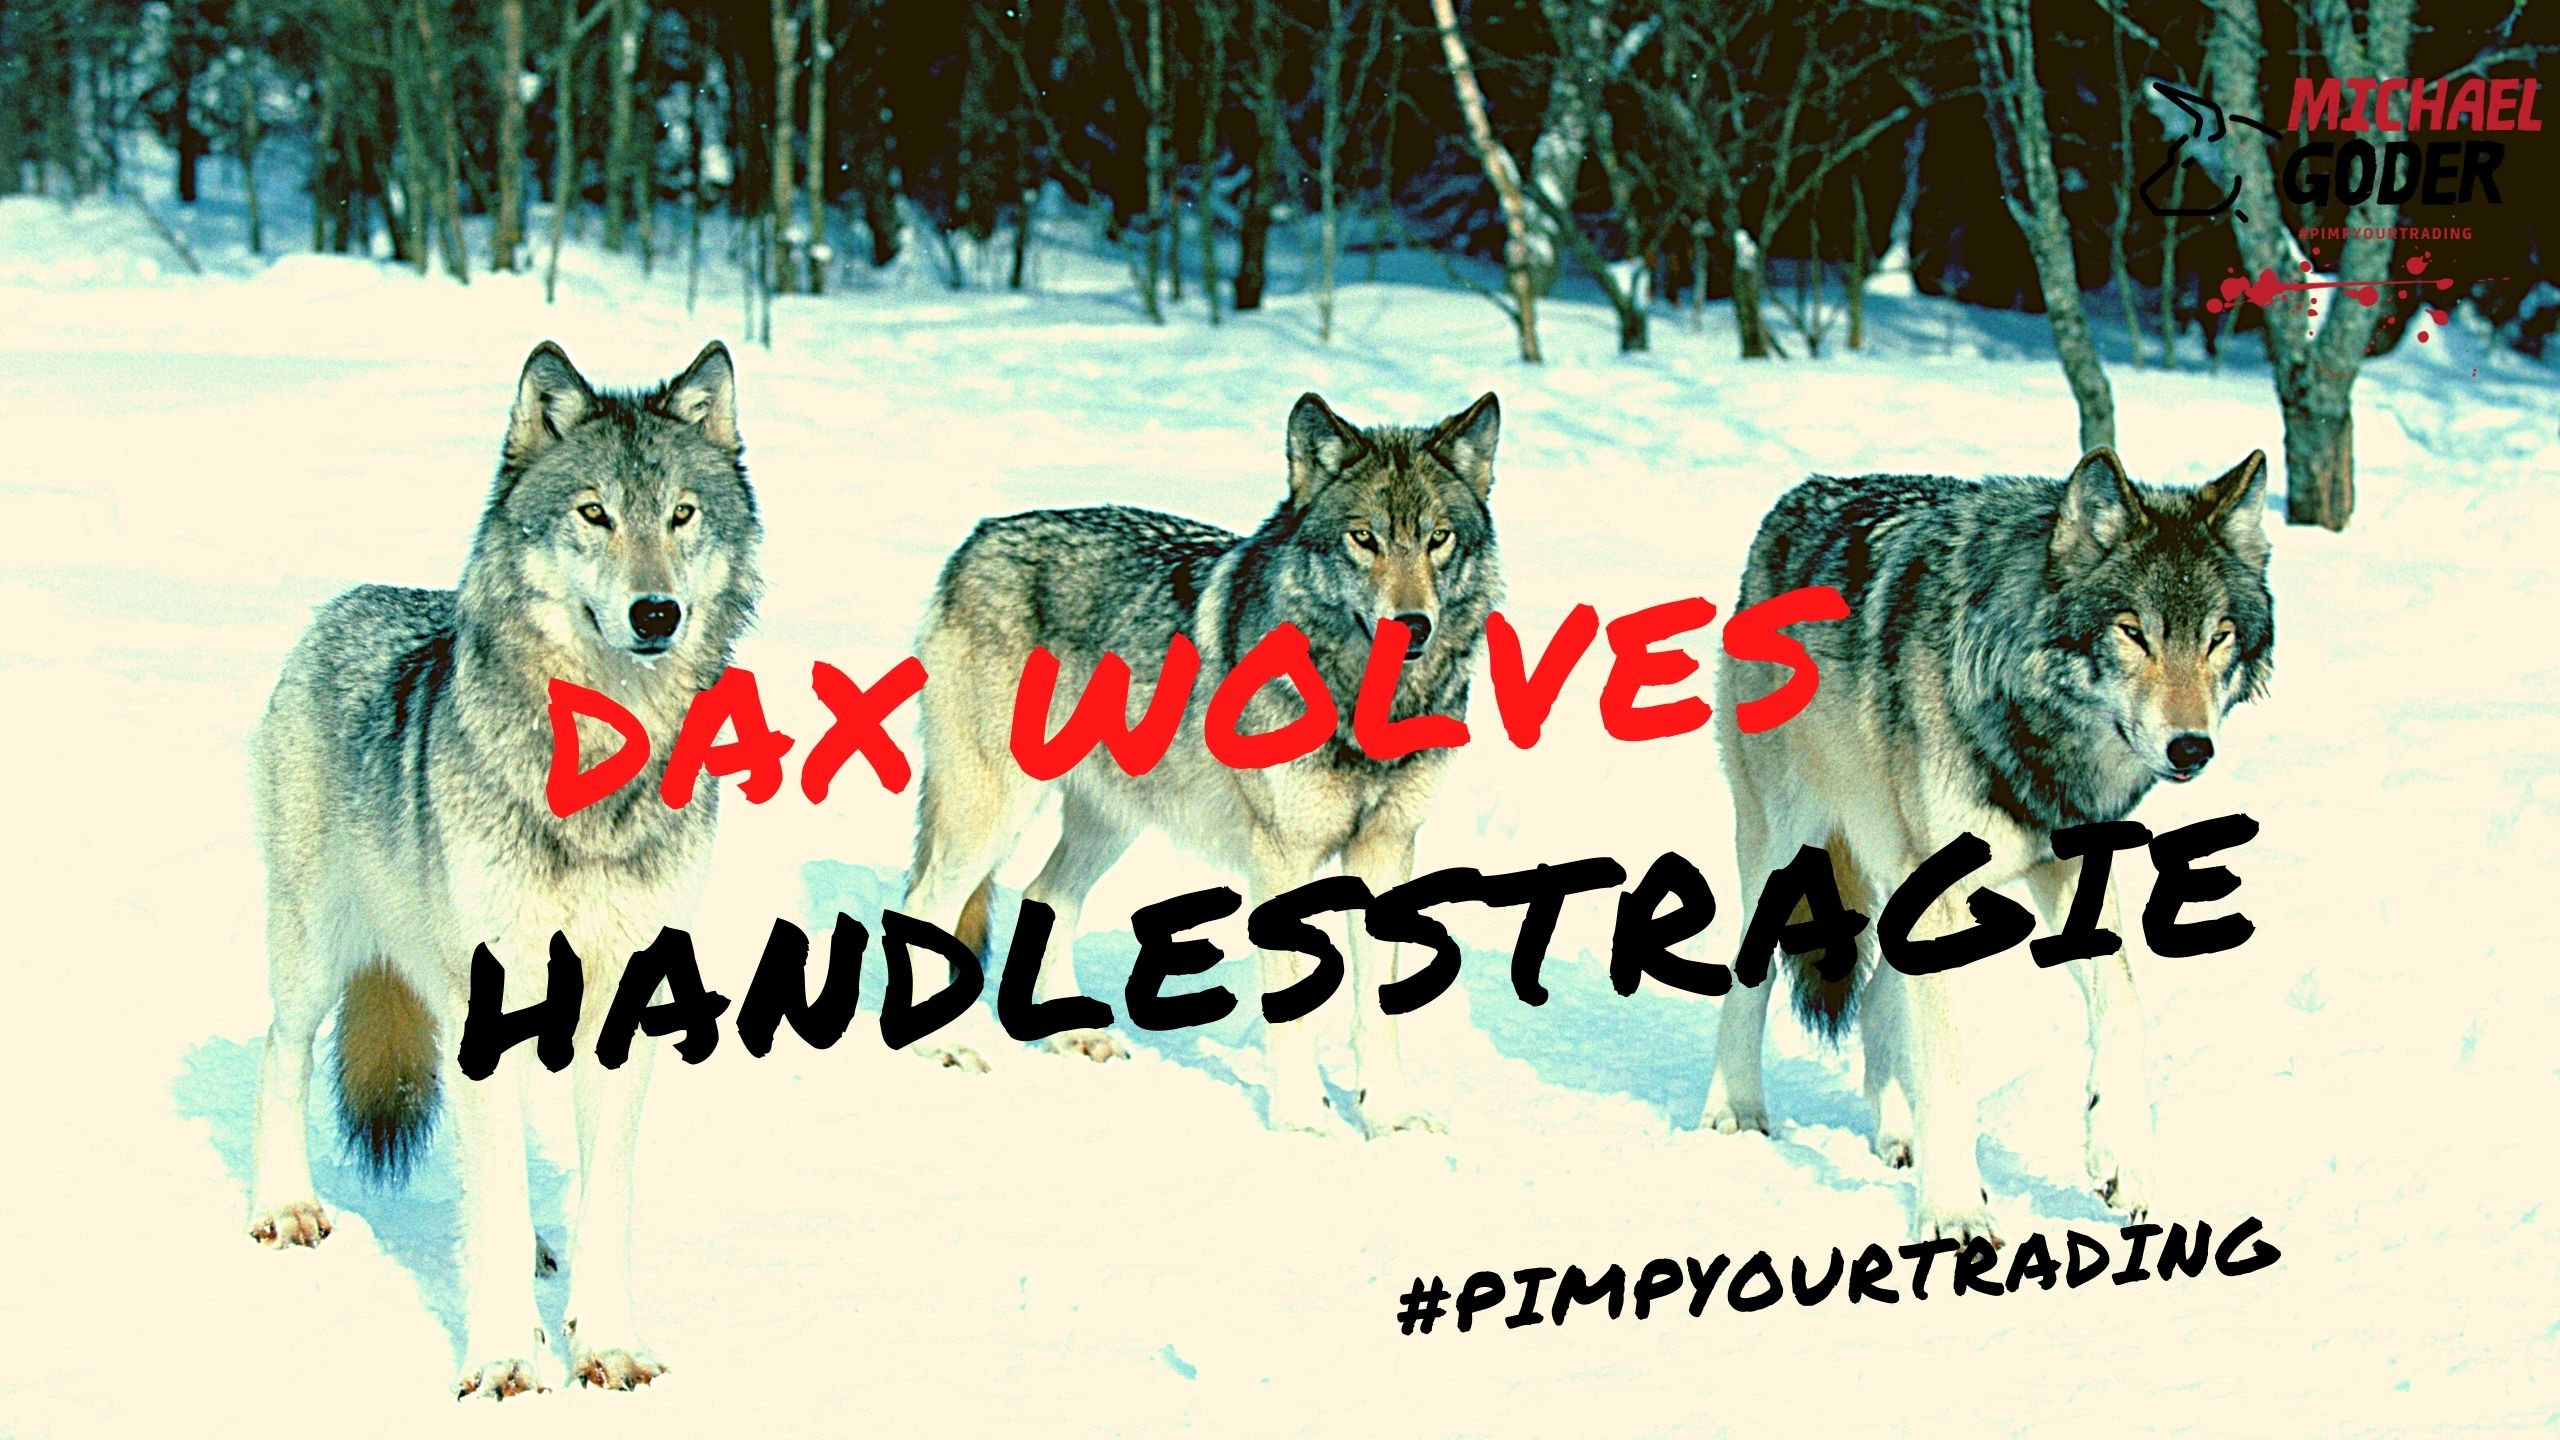 Dax Wolves